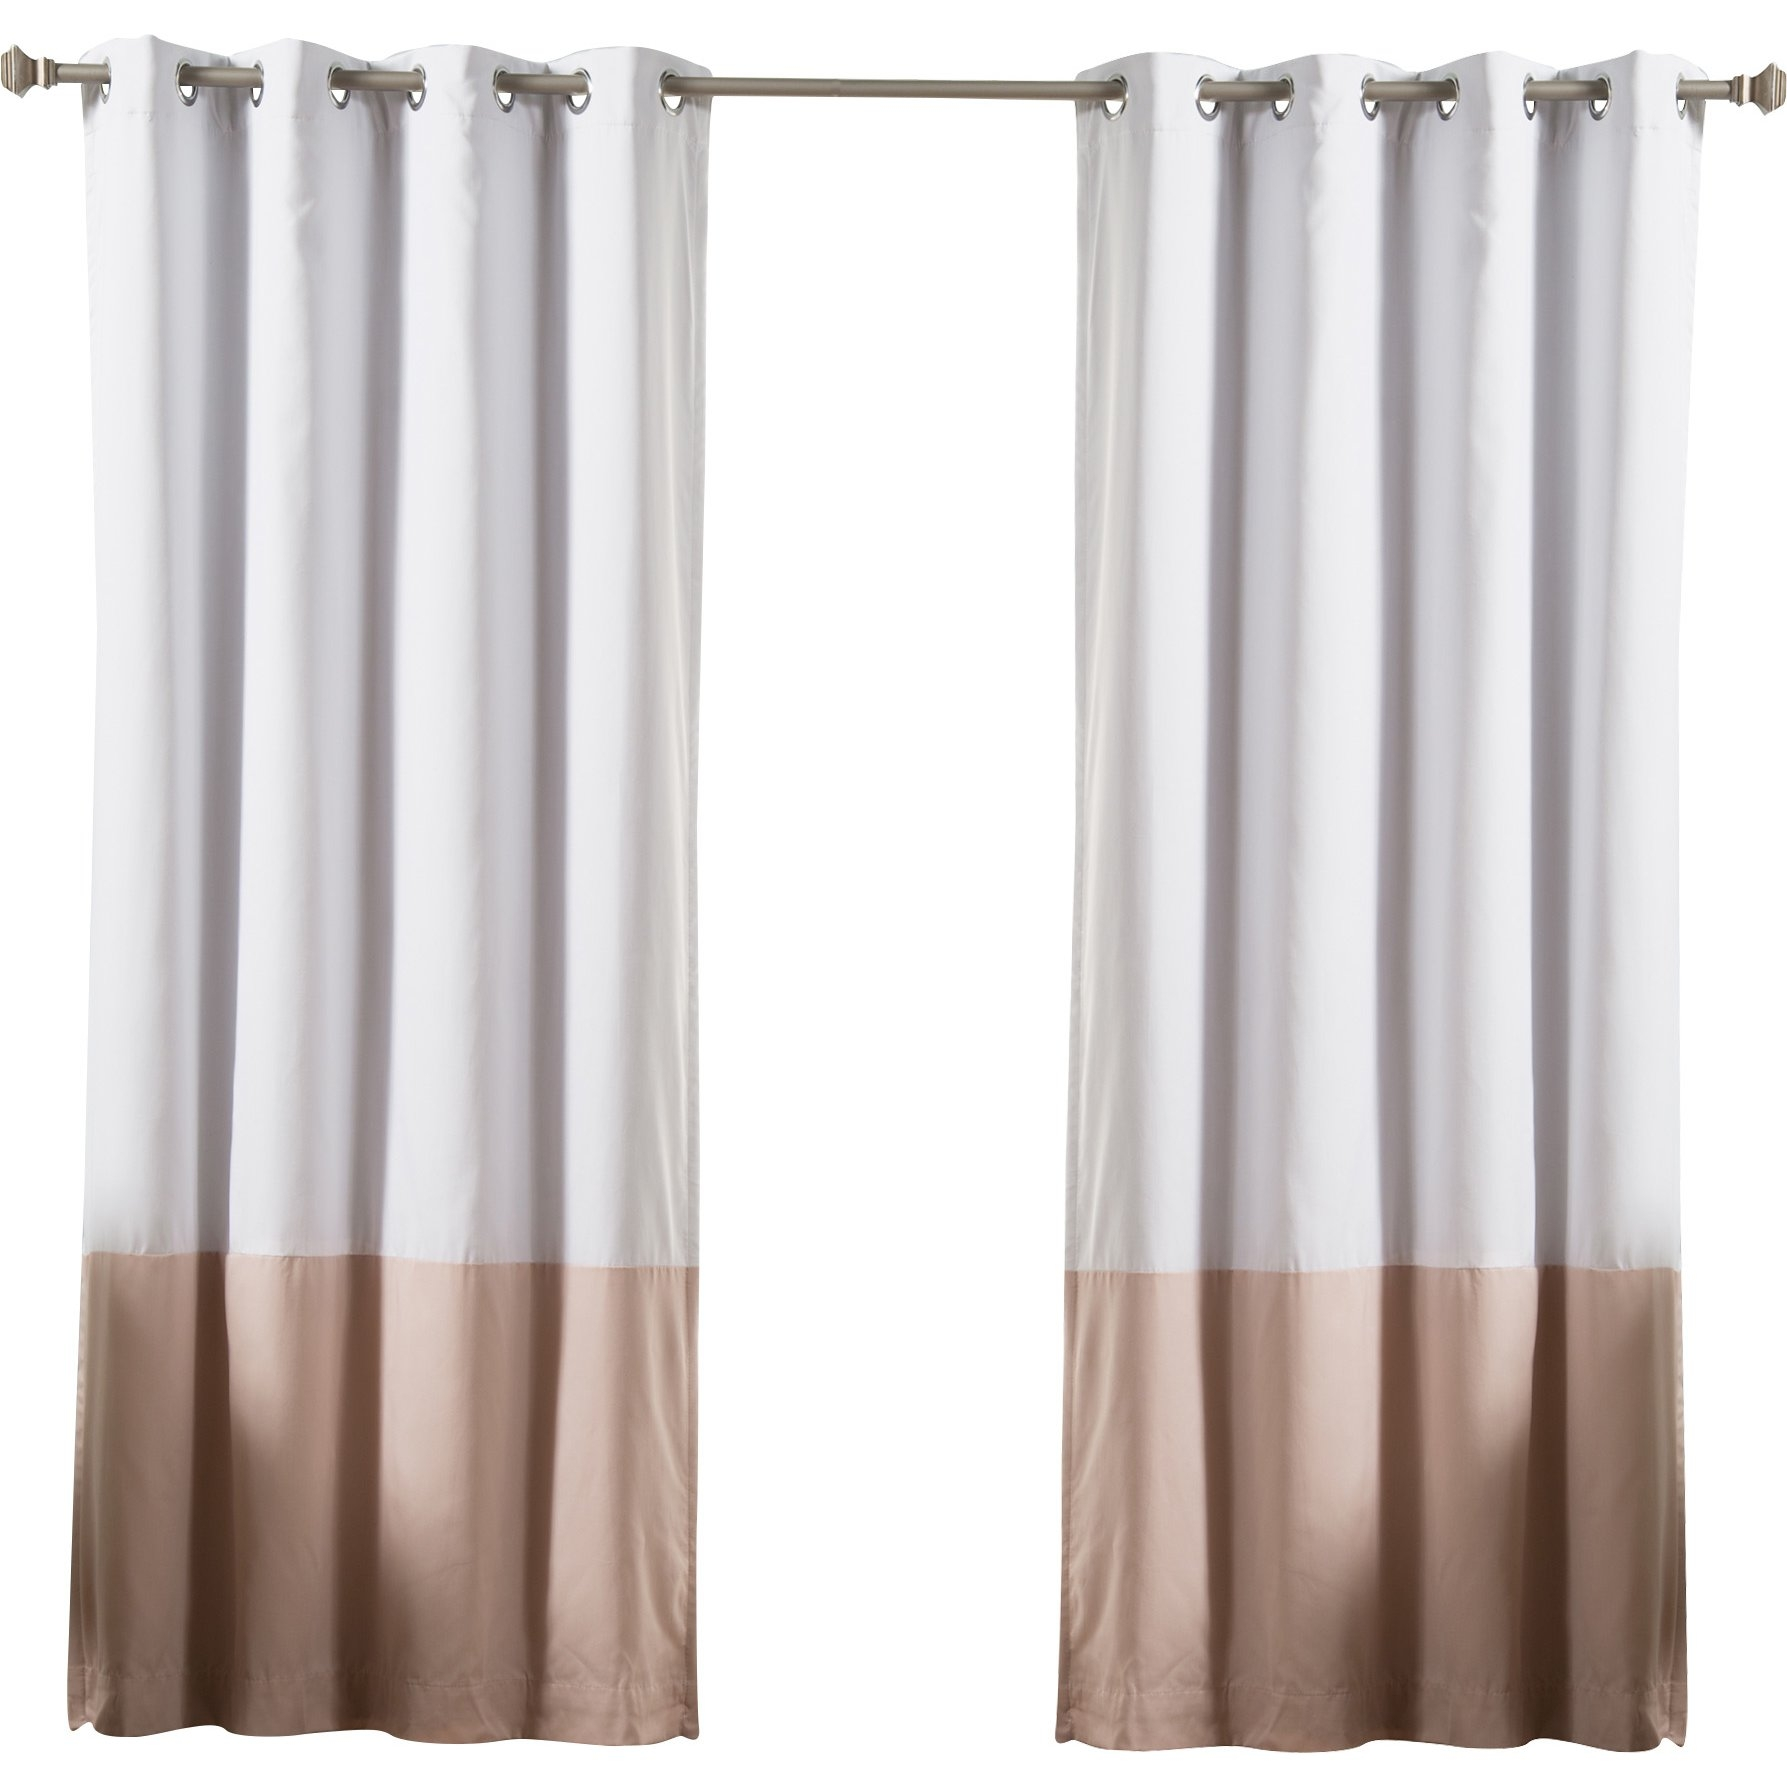 Color Block Cotton Blend Striped Blackout Thermal Grommet Curtain With Regard To Striped Thermal Curtains (Image 6 of 15)